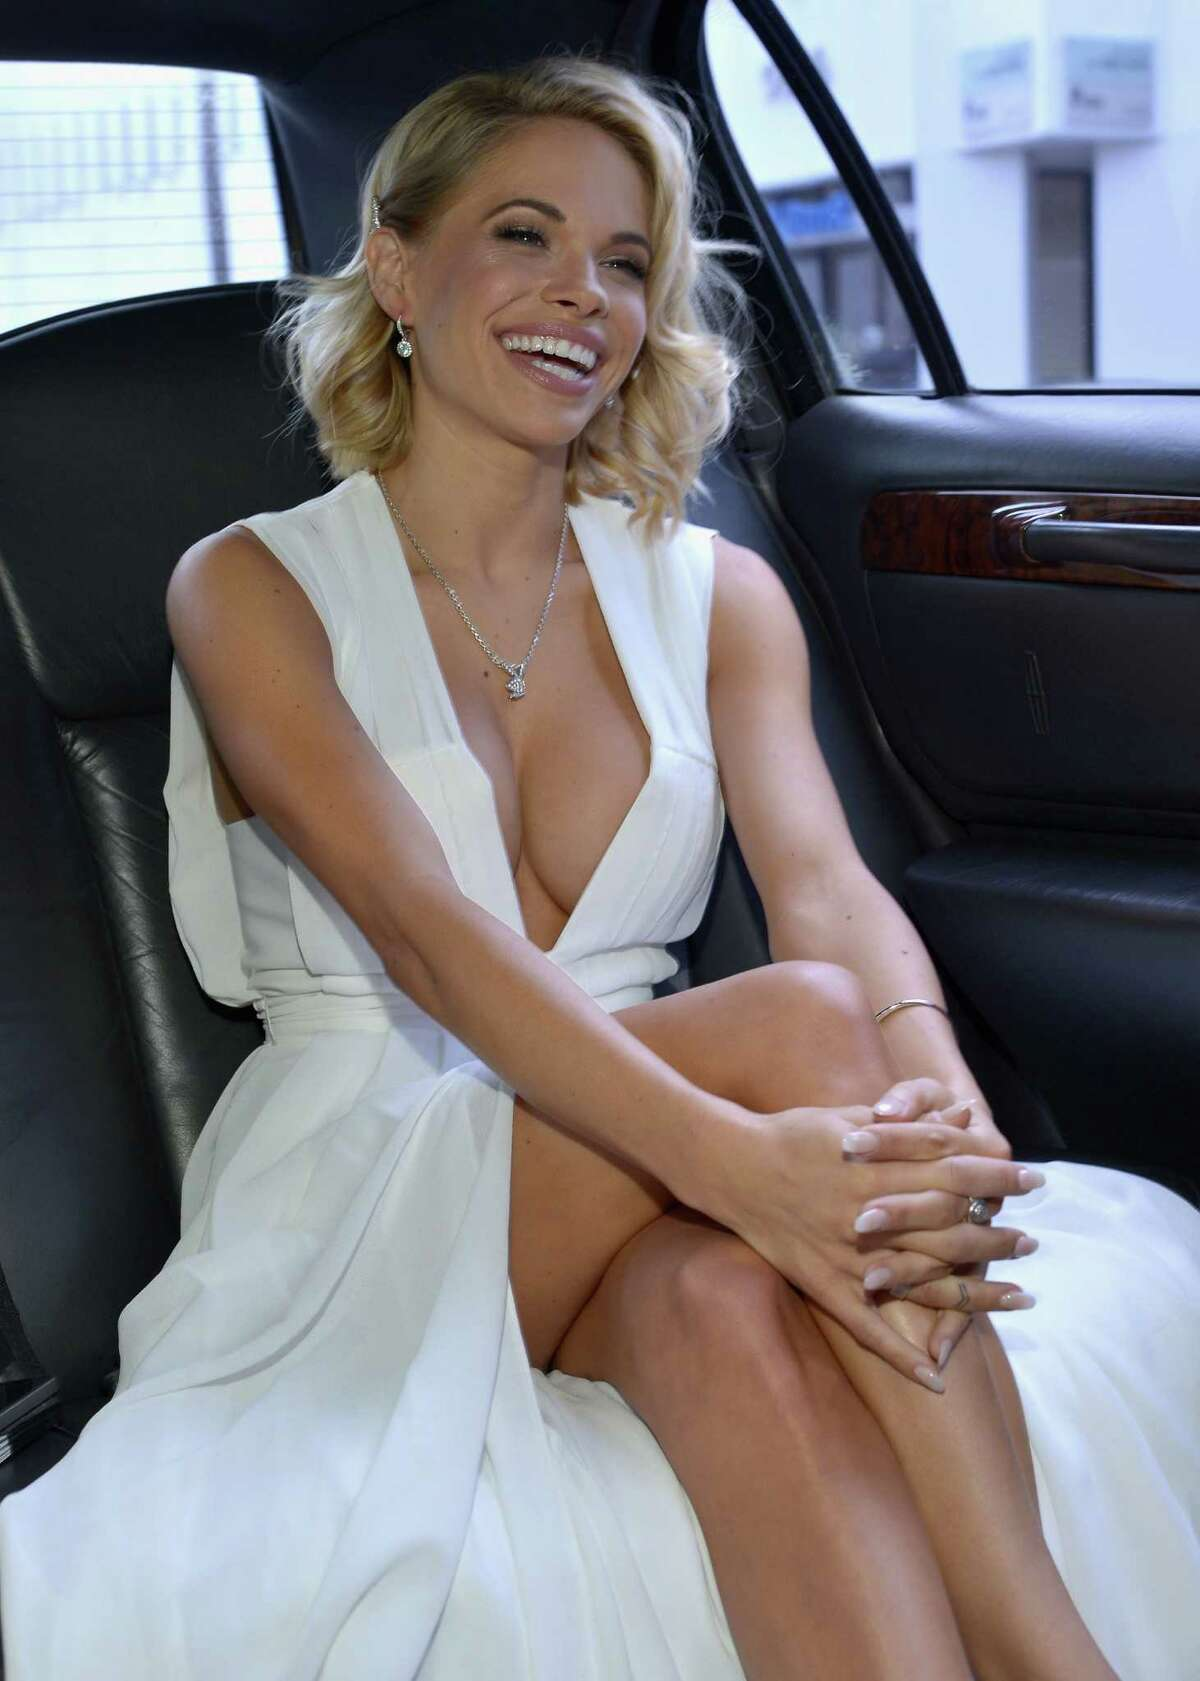 2015 Playmate of the Year Dani Mathers gets ready for Playboy?'s 2015 Playmate of the Year Ceremony at the Playboy Mansion on May 14, 2015 in Los Angeles, California.